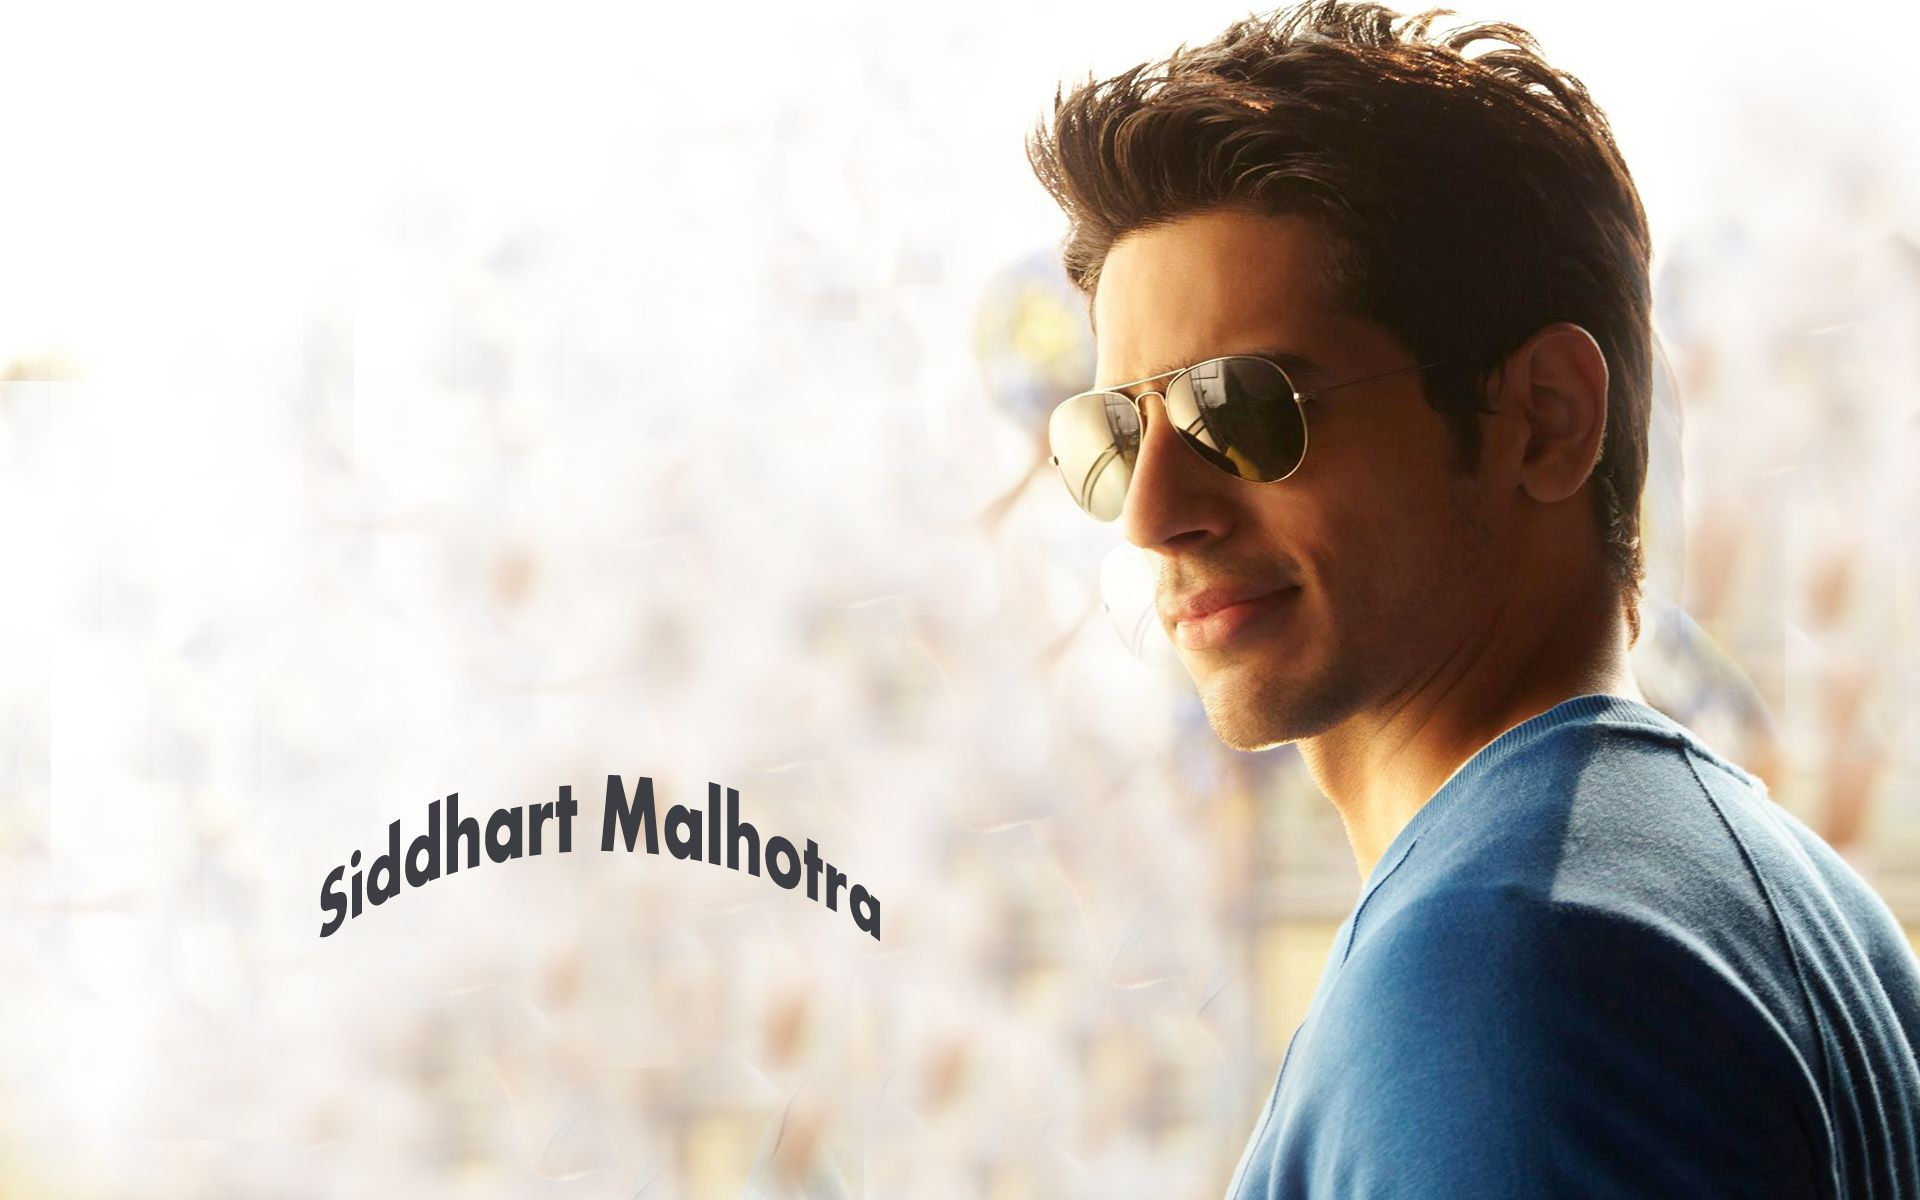 Bollywood Actors Walpaper In 2080p: Dashing Siddharth Malhotra Bollywood Actor HD Wallpapers